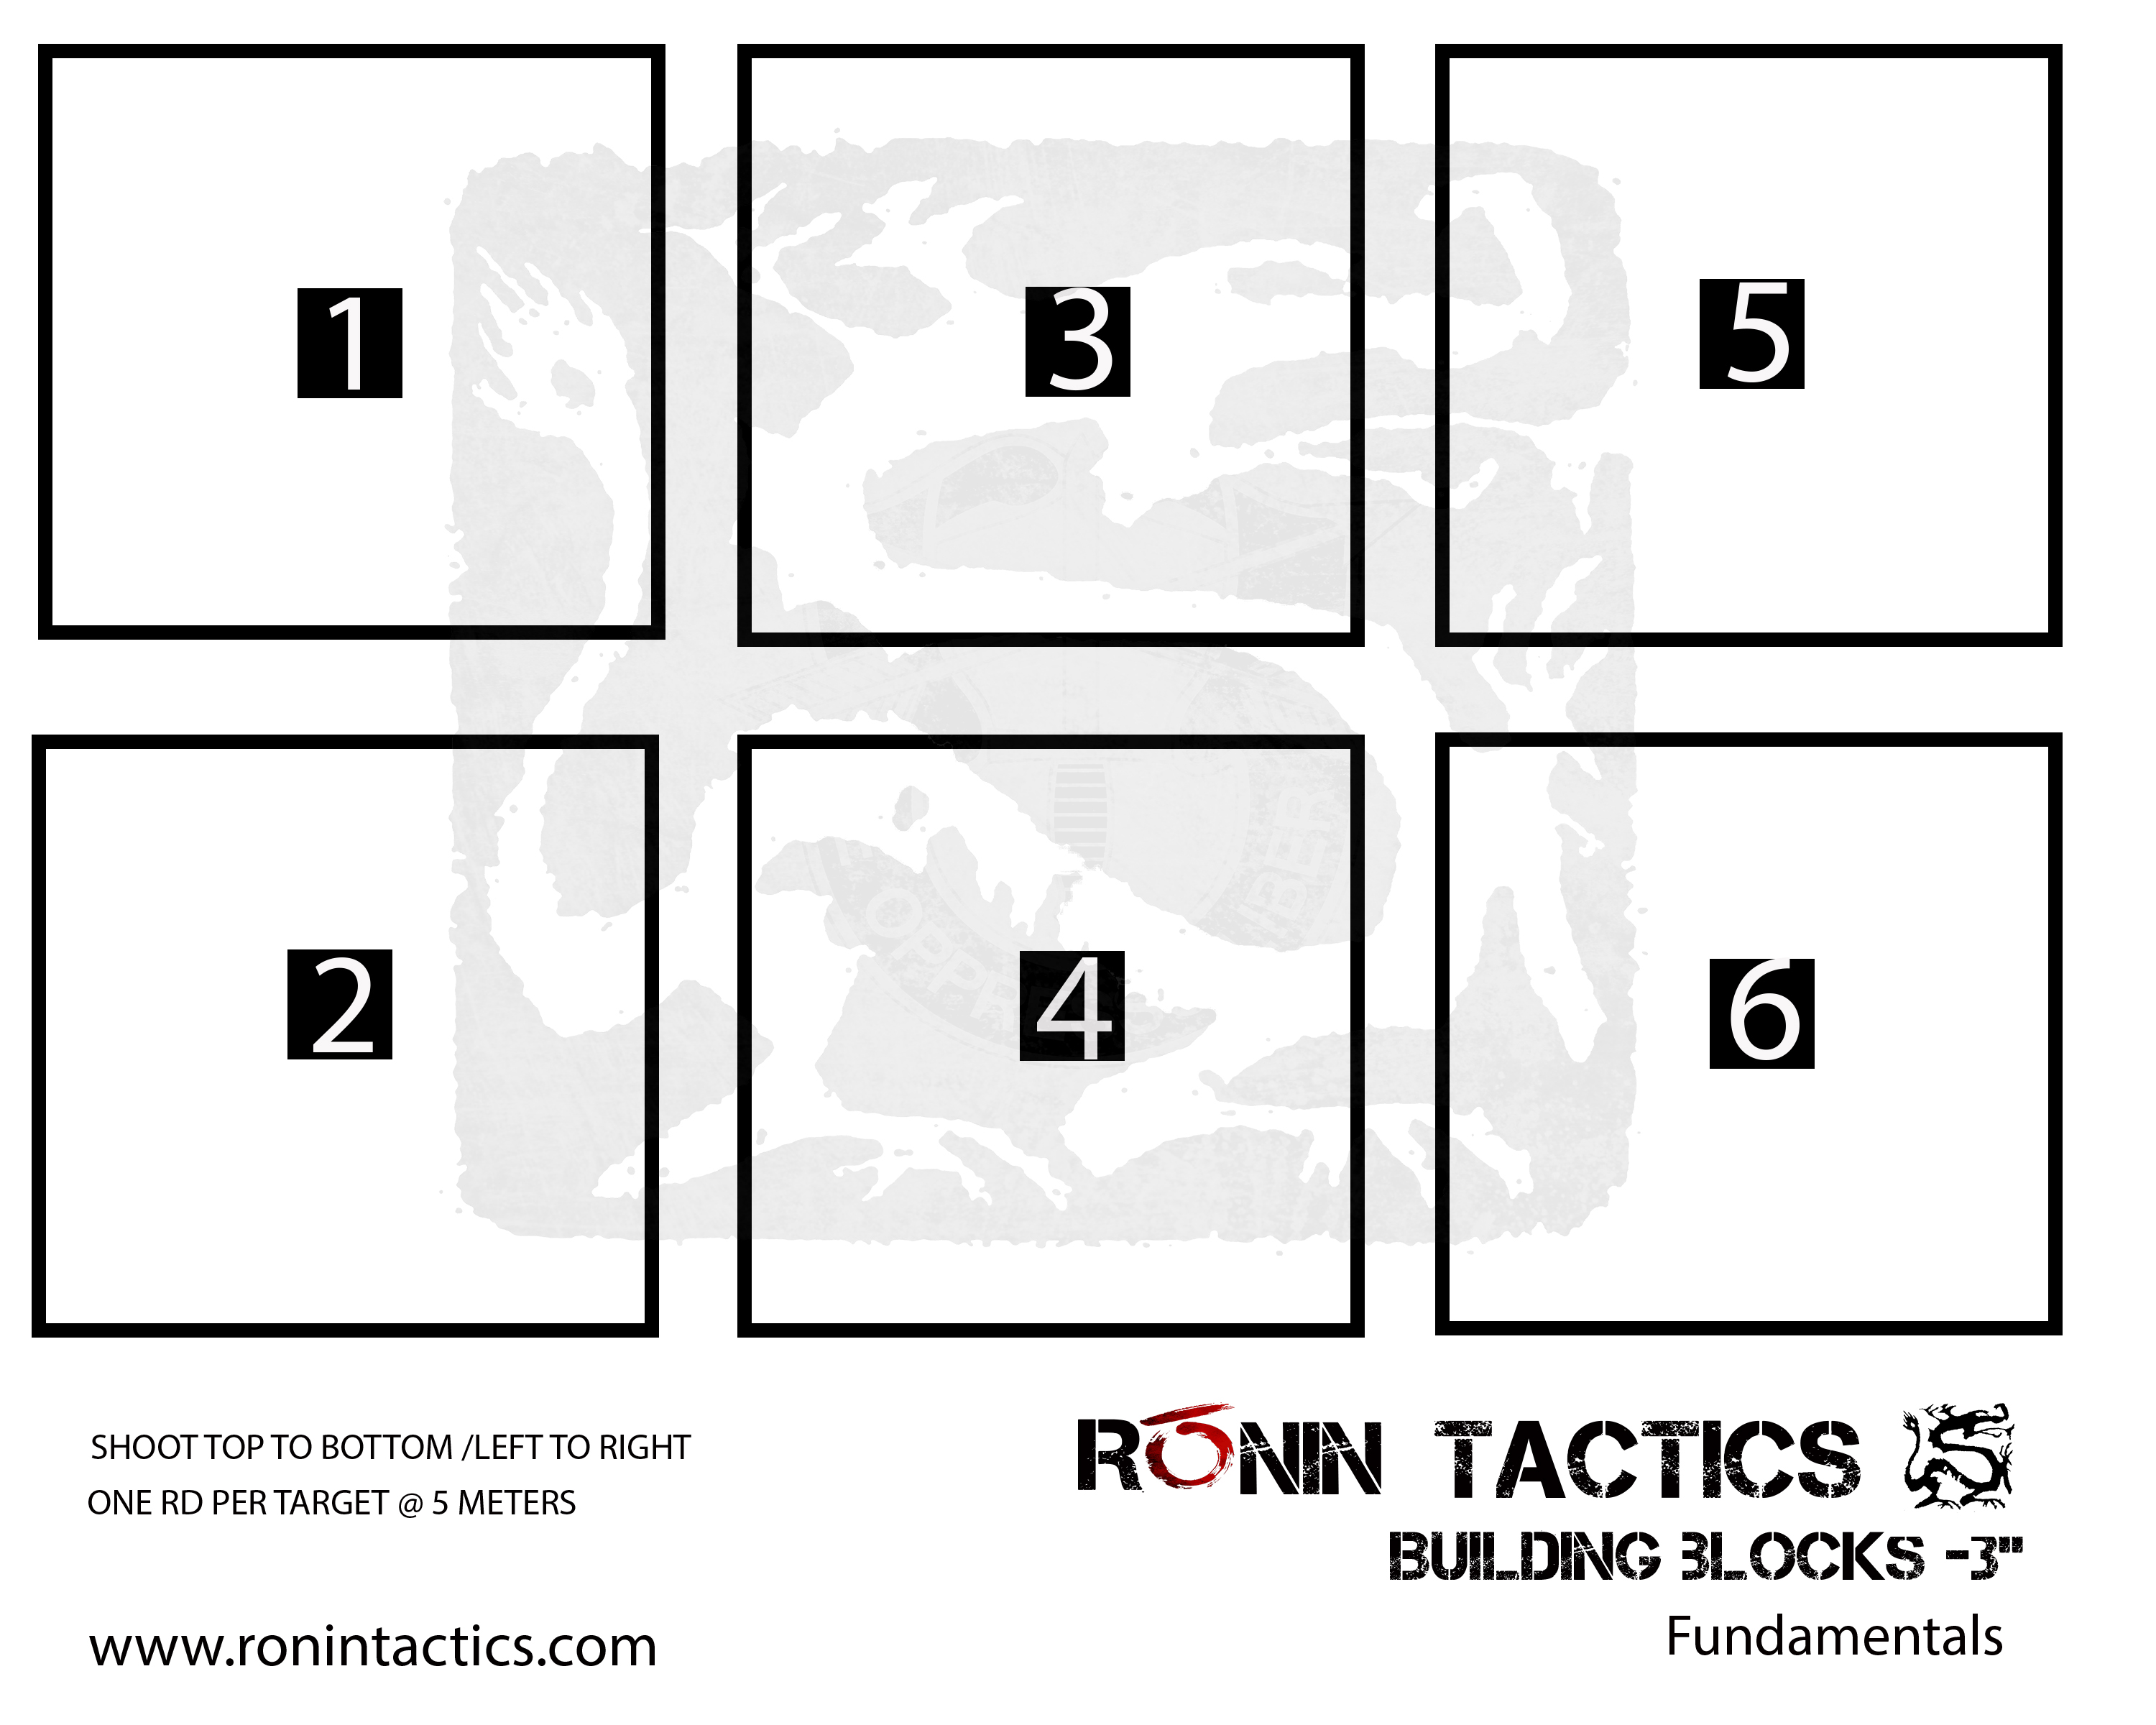 graphic regarding Printable Dry Fire Targets called Tactical CQB Working out for Civilians - Tactical Capturing